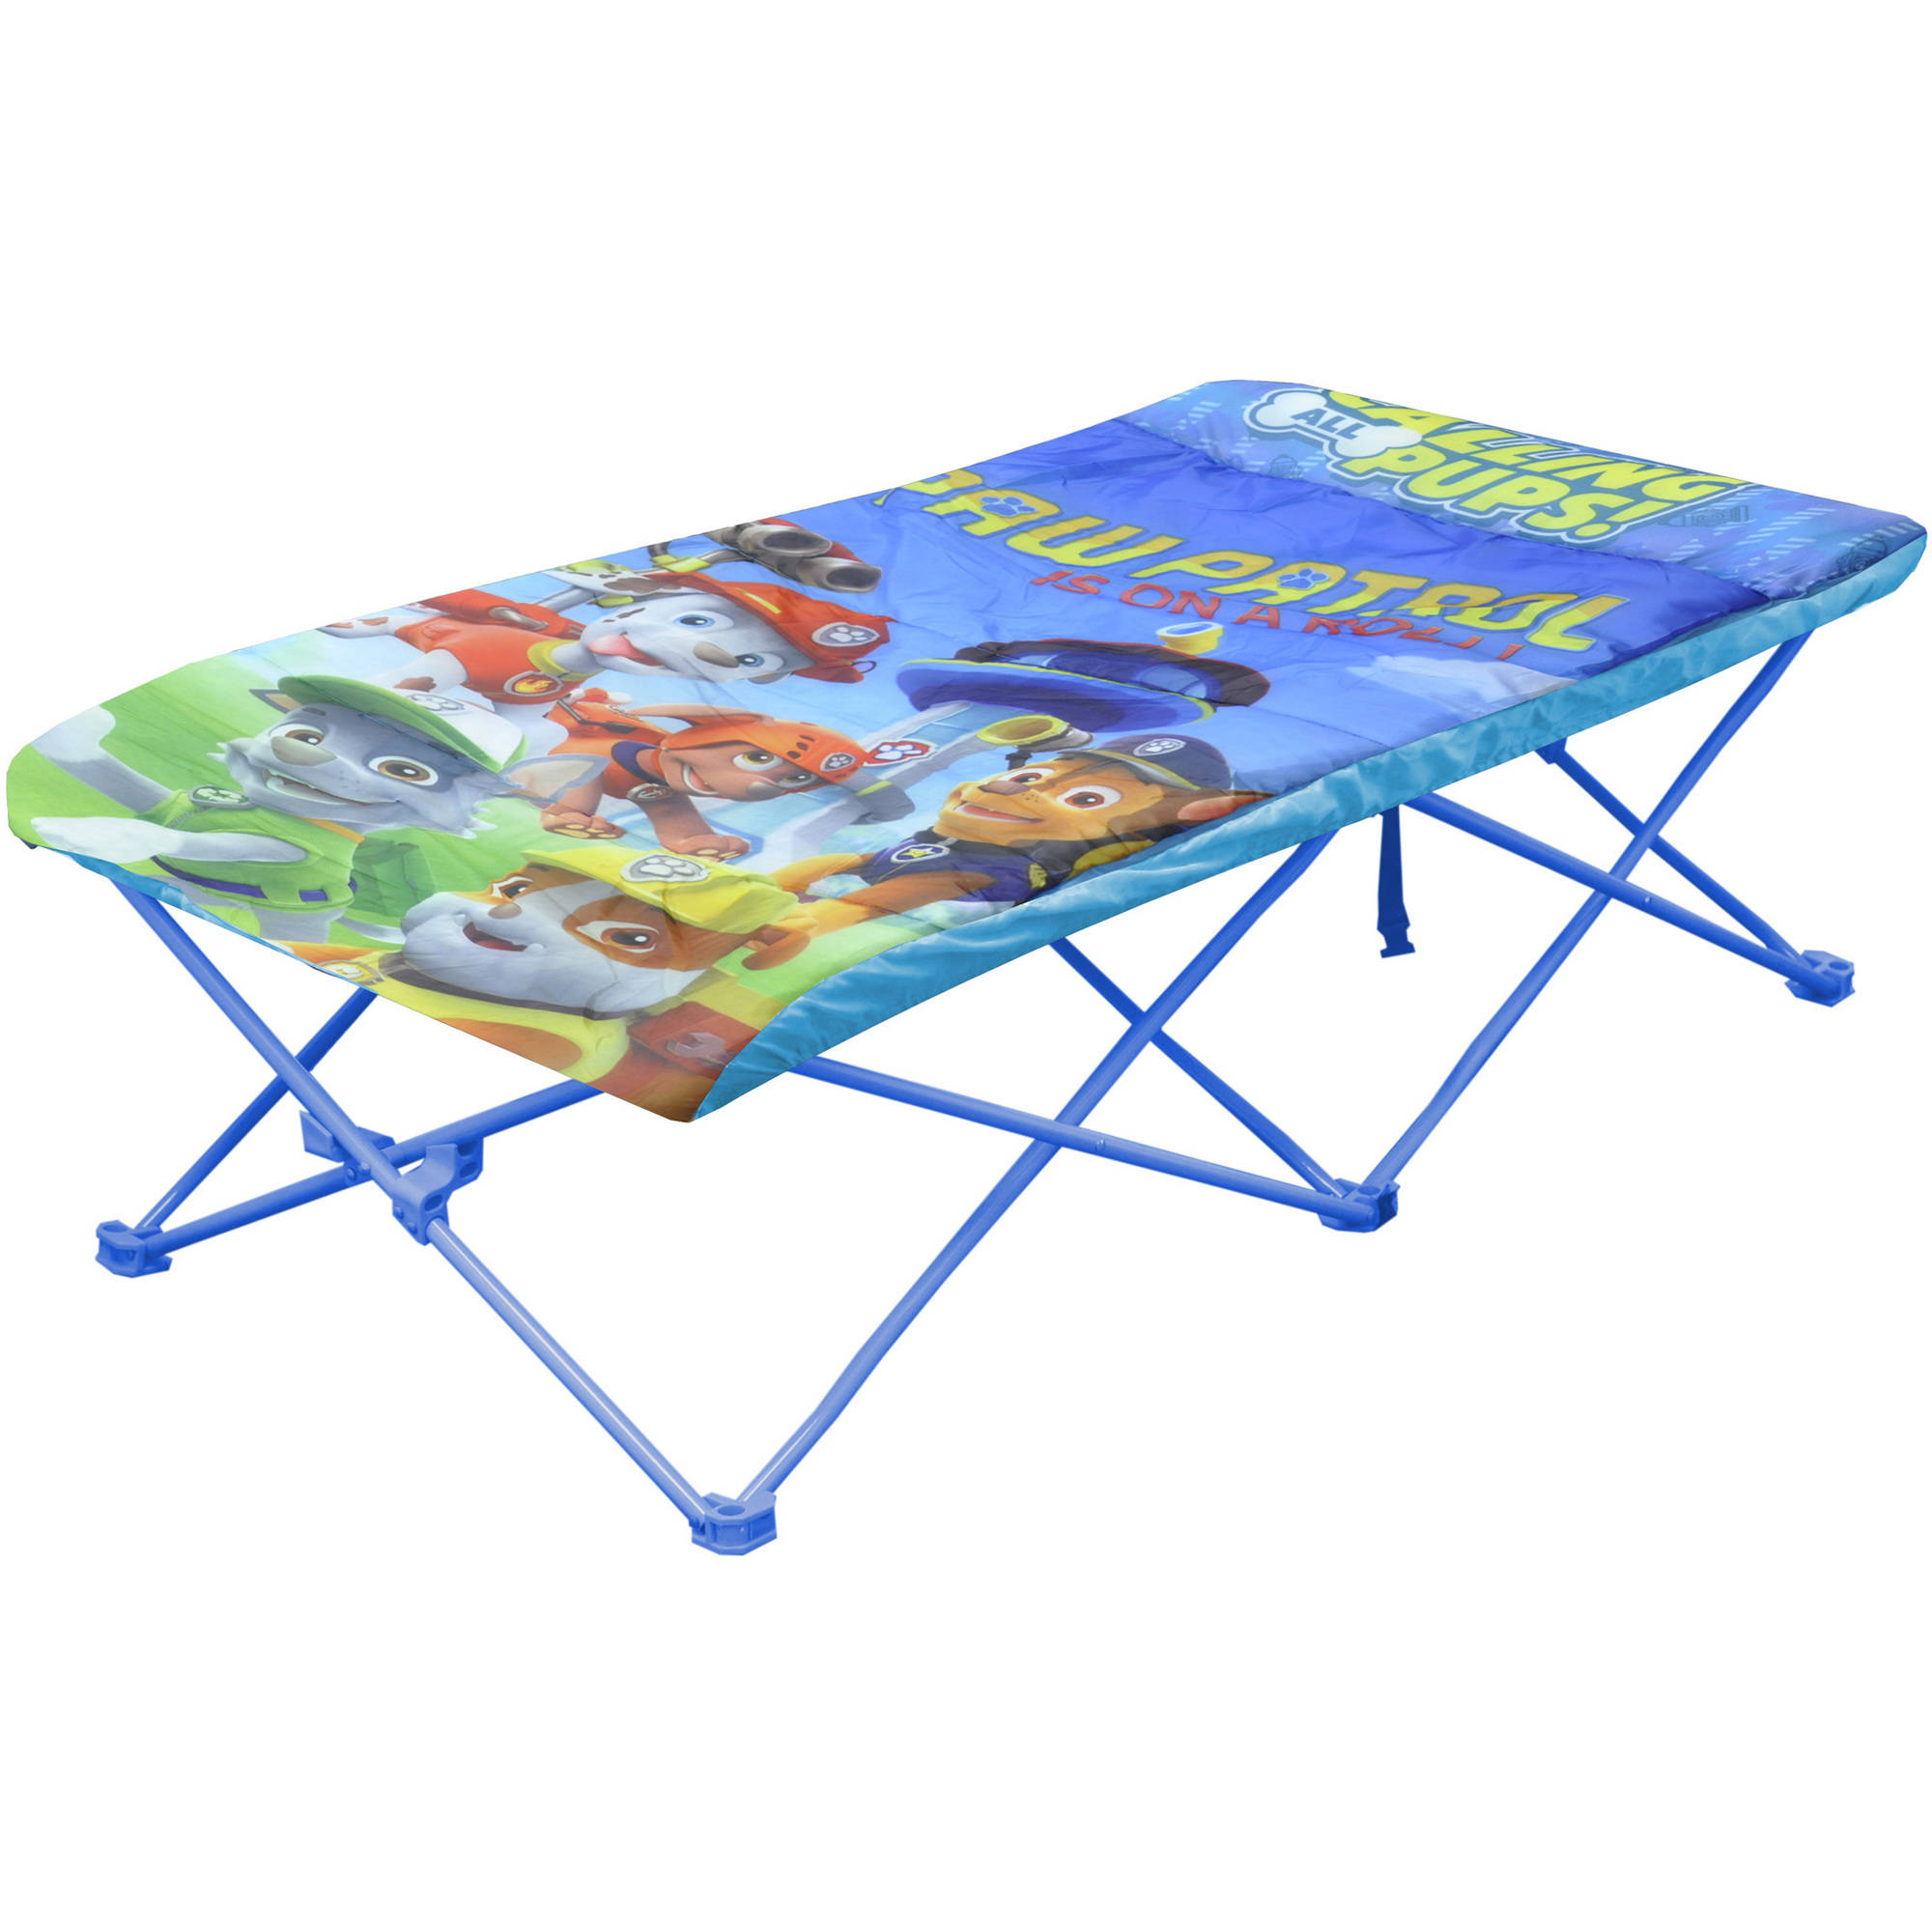 Paw Patrol Portable Travel Bed